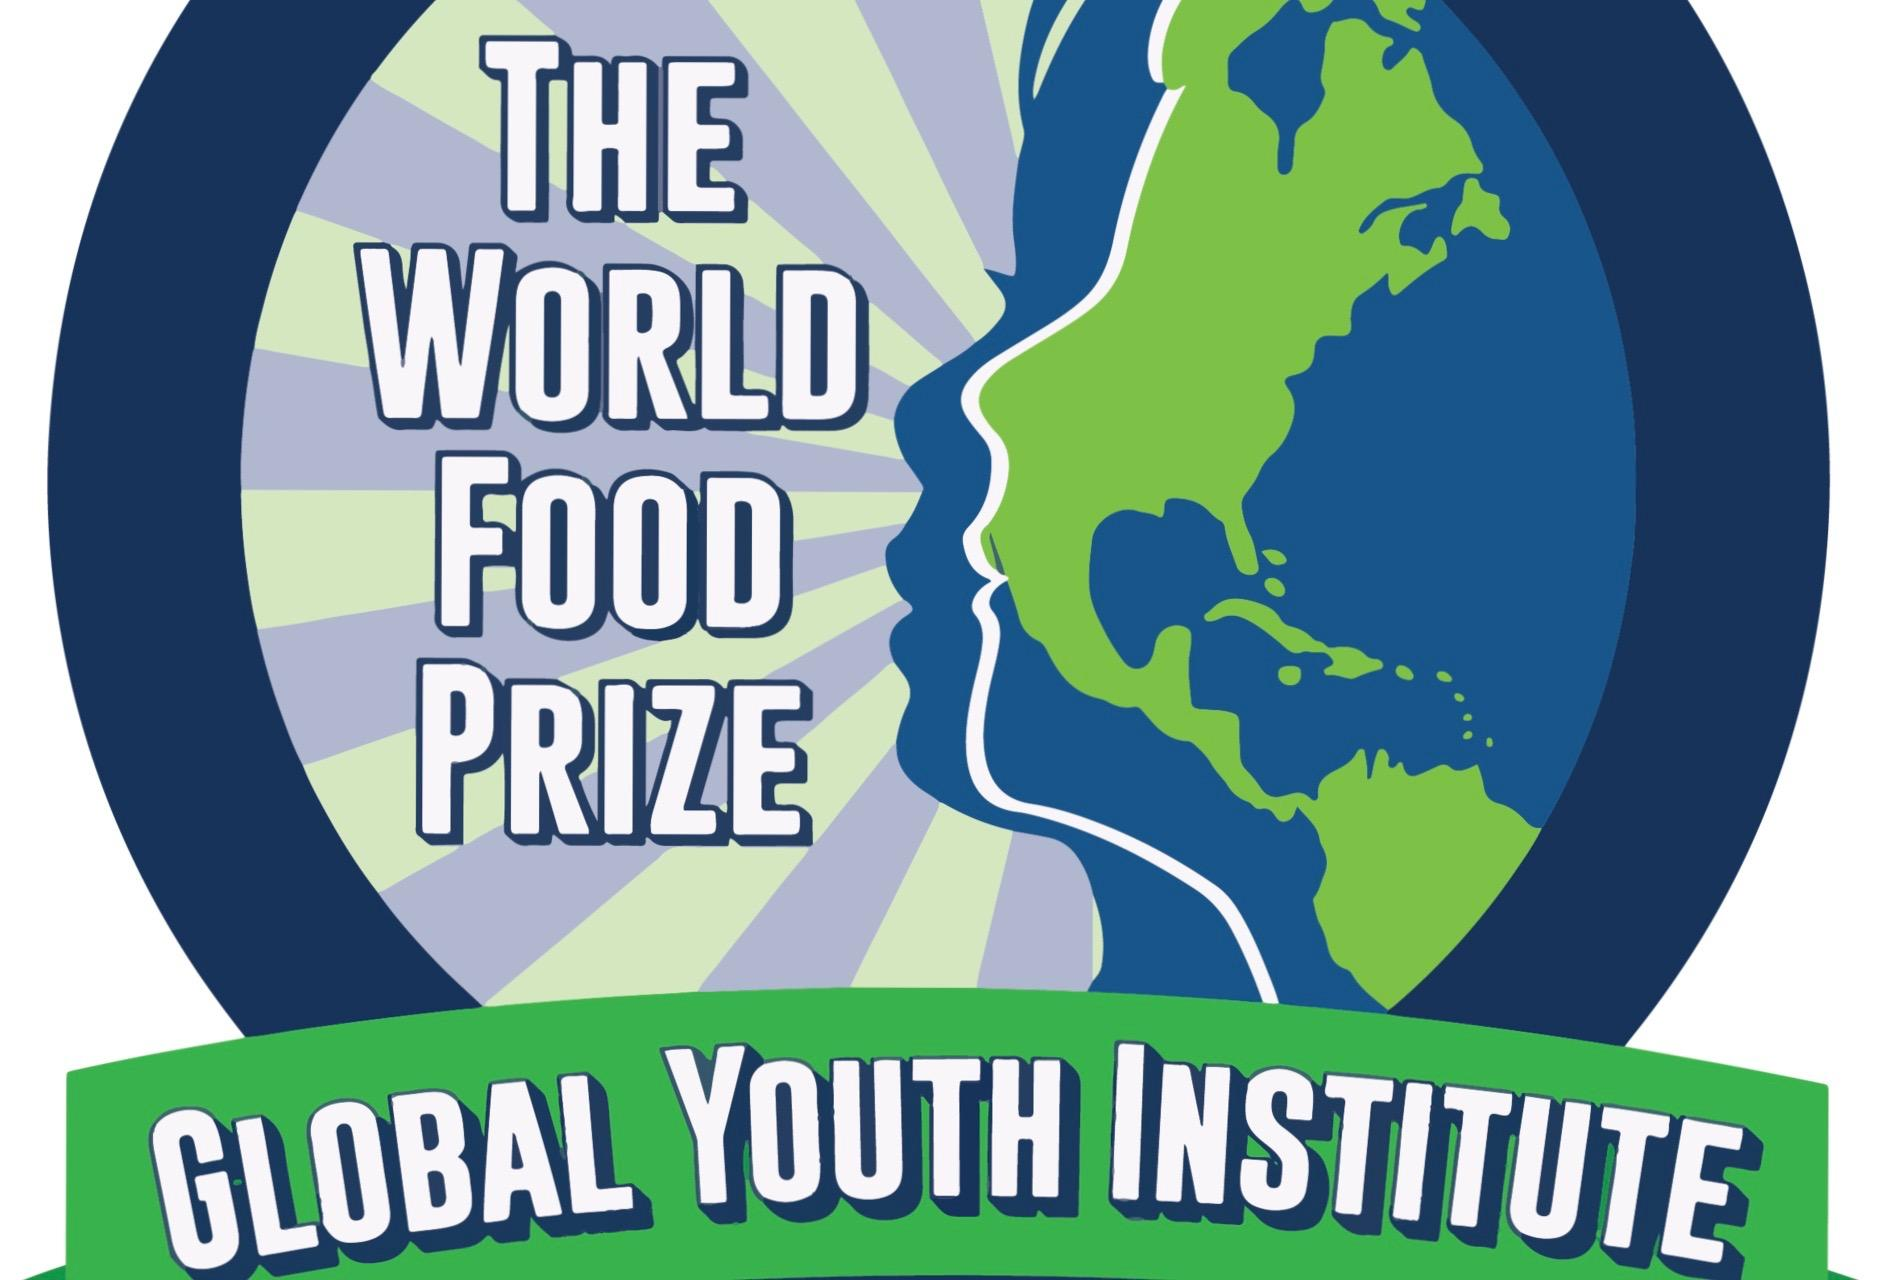 Zoe Card Goes to the Global Youth Institute